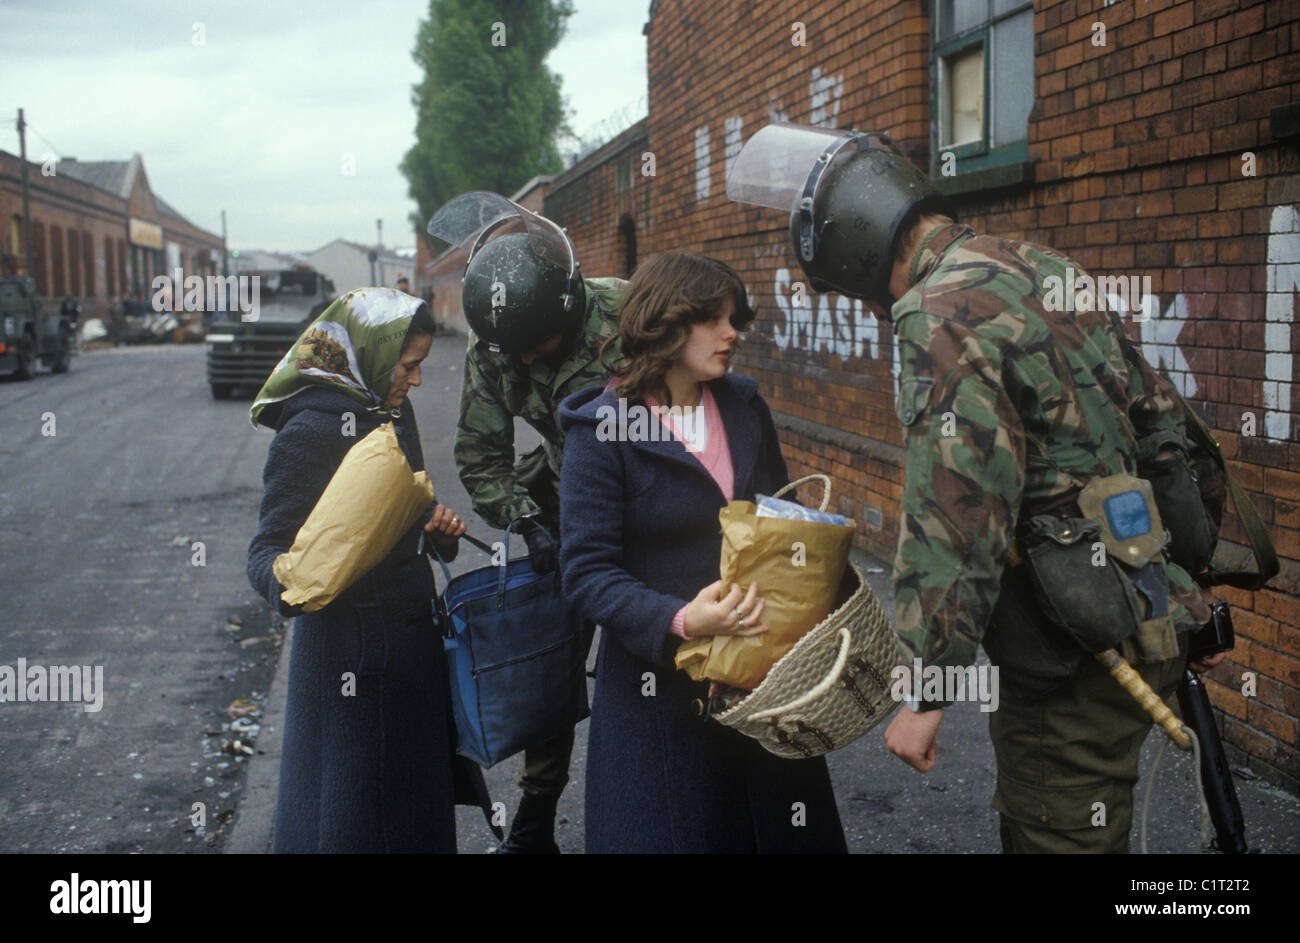 Belfast The Troubles. 1980s. British soldiers stop and search woman and daughter. HOMER SYKES - Stock Image